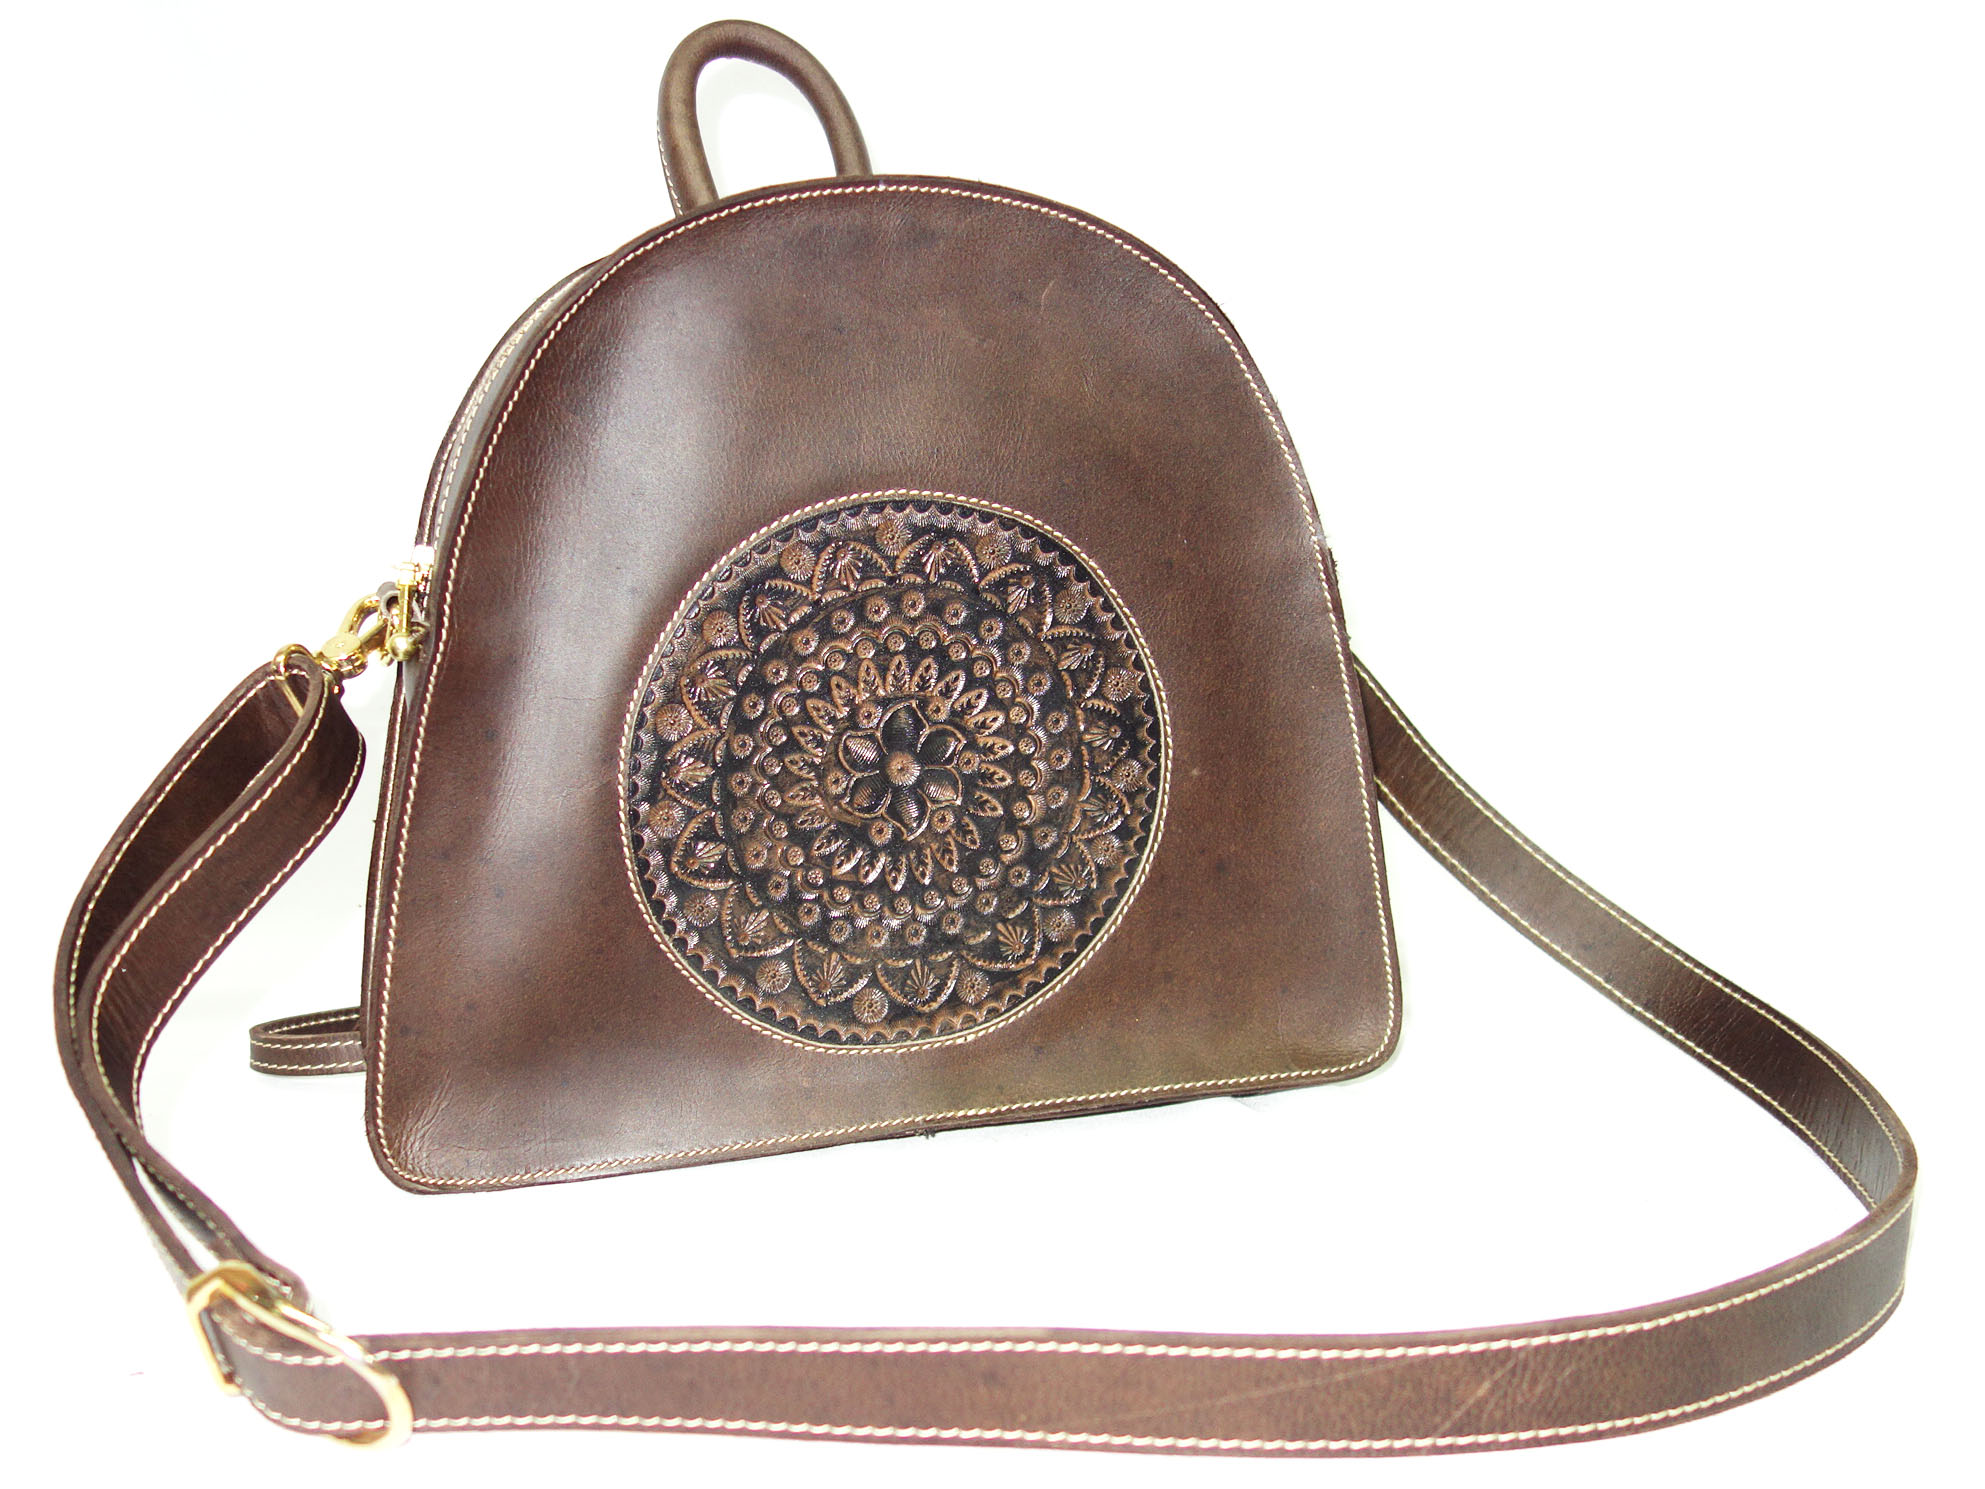 Handmade Bag Genuine Leather Handbag, Hand Crafted and Color with Shoulder Strap for Woman Vintage Finish (Dark Brow)